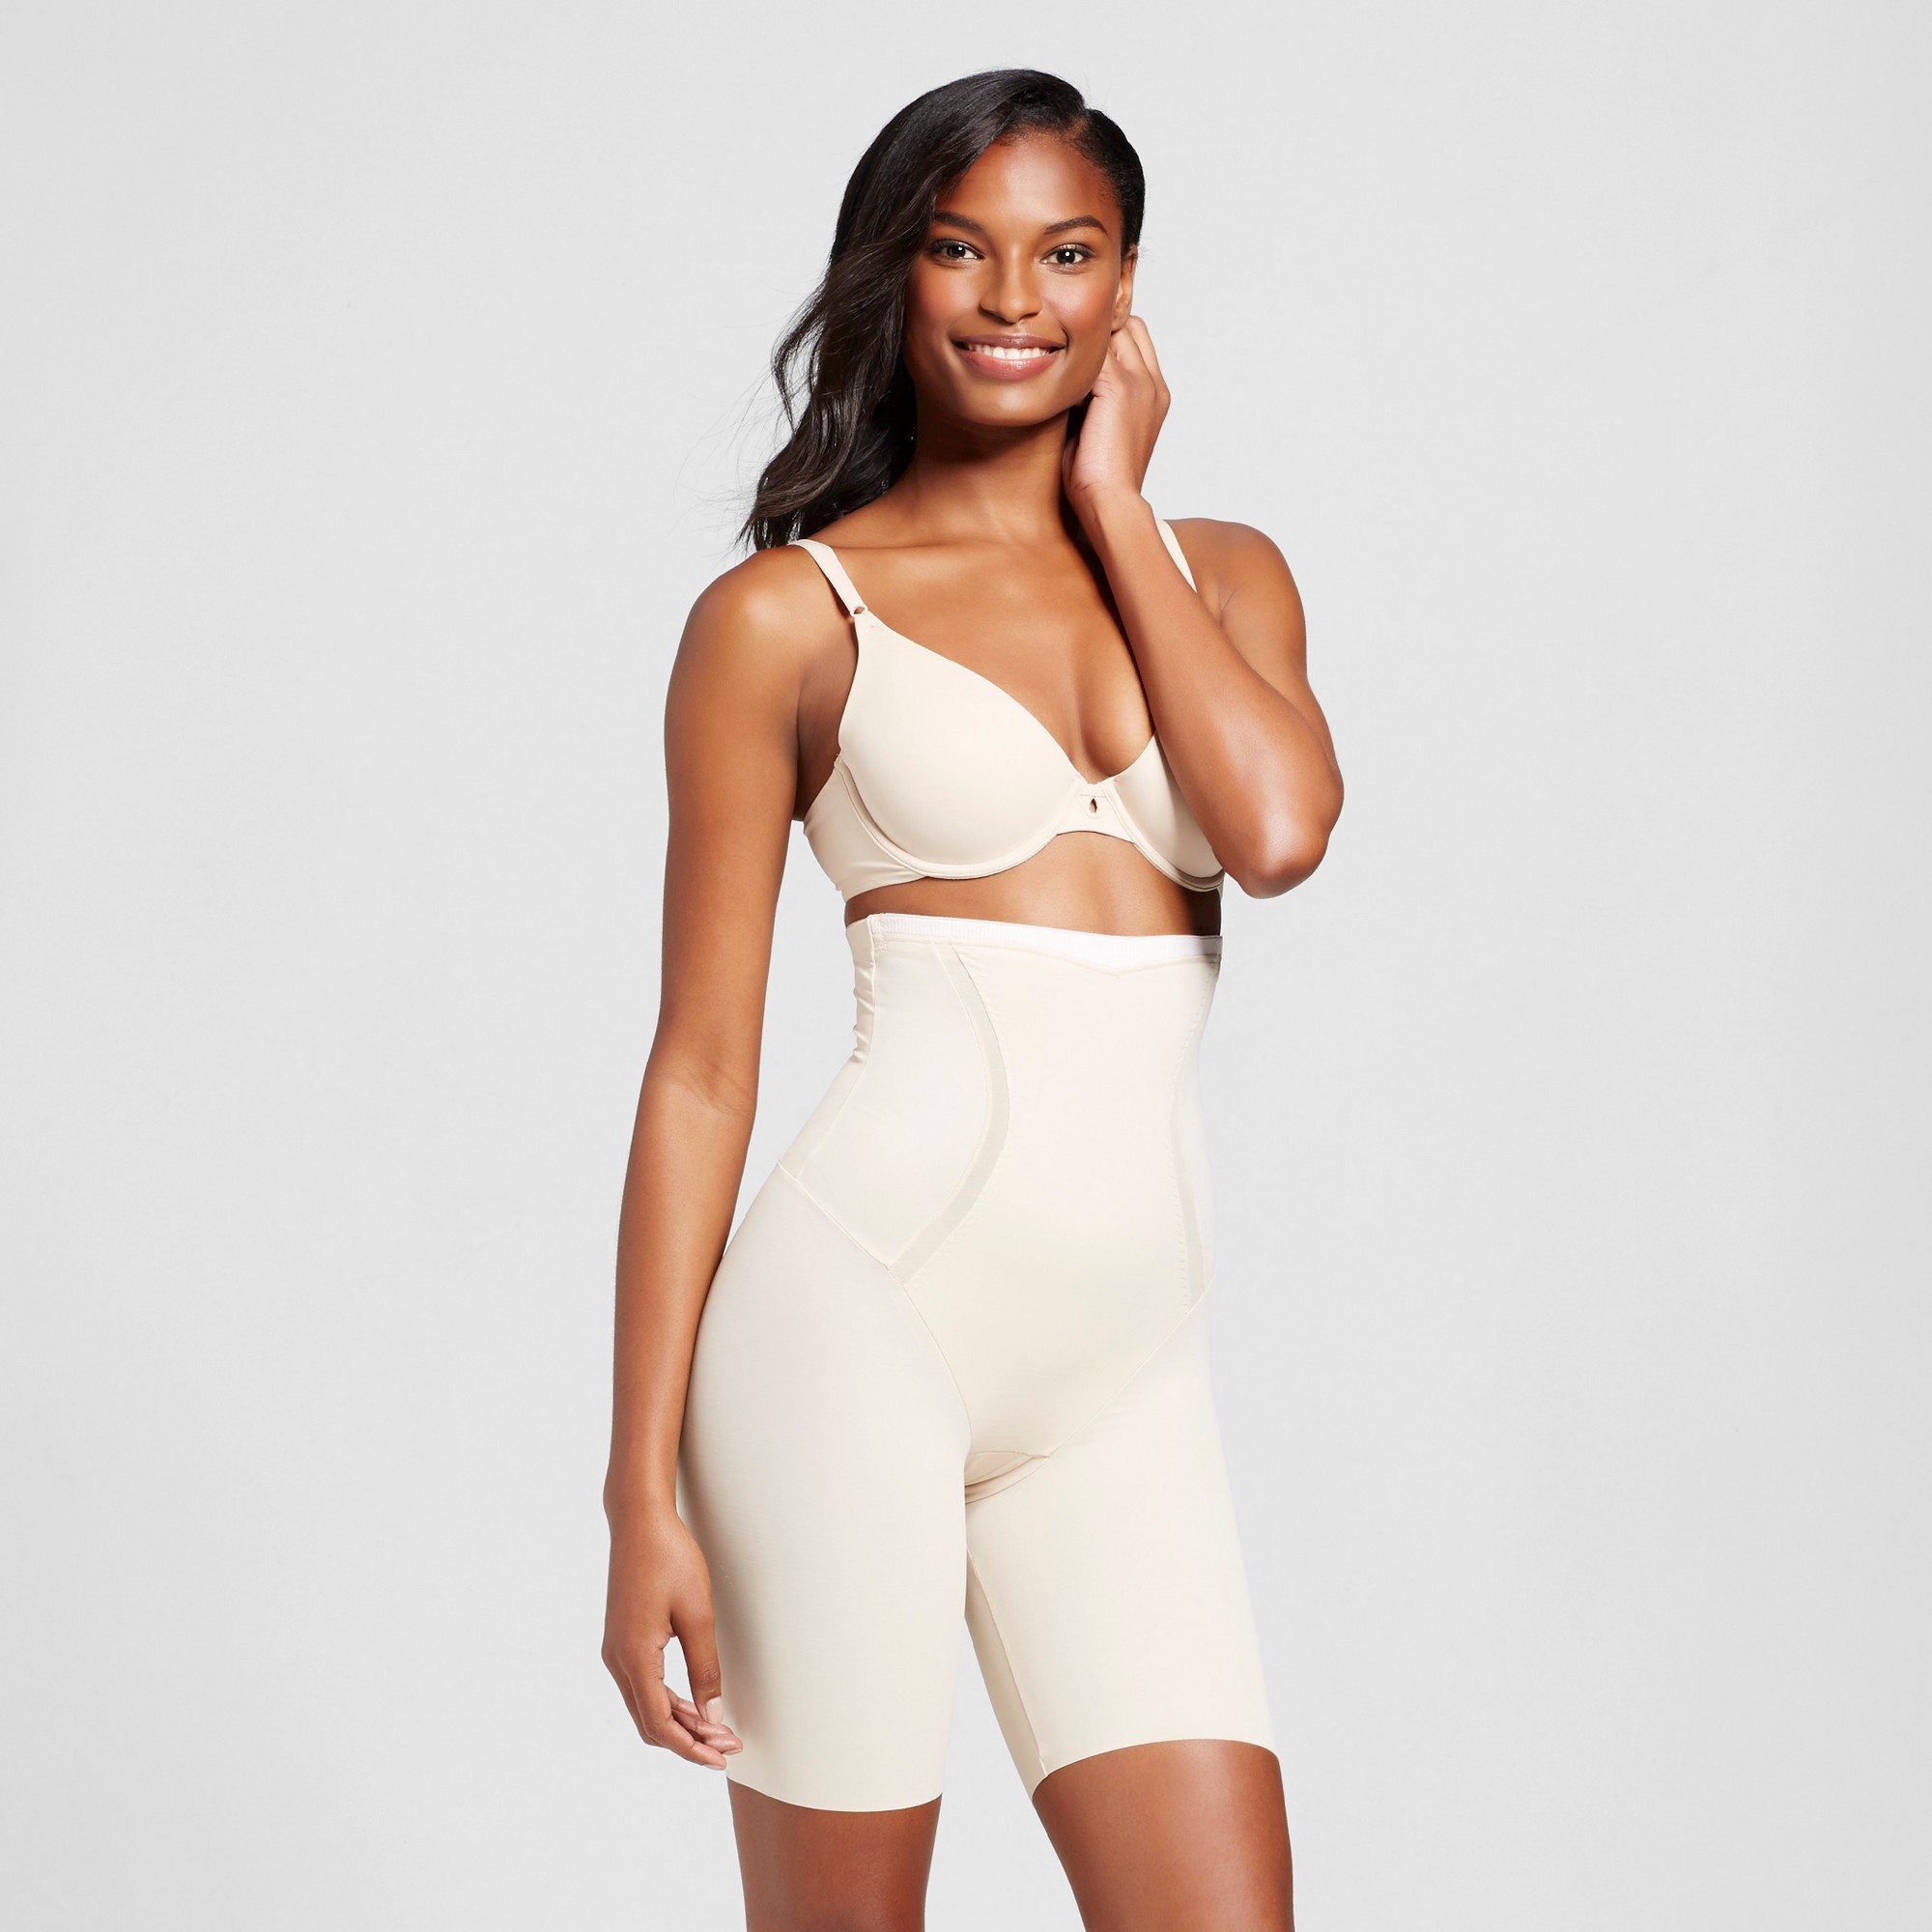 ff0ad15dfd Maidenform Self Expressions Women s Firm Foundations Thighslimmer SE5001 -  Latte S